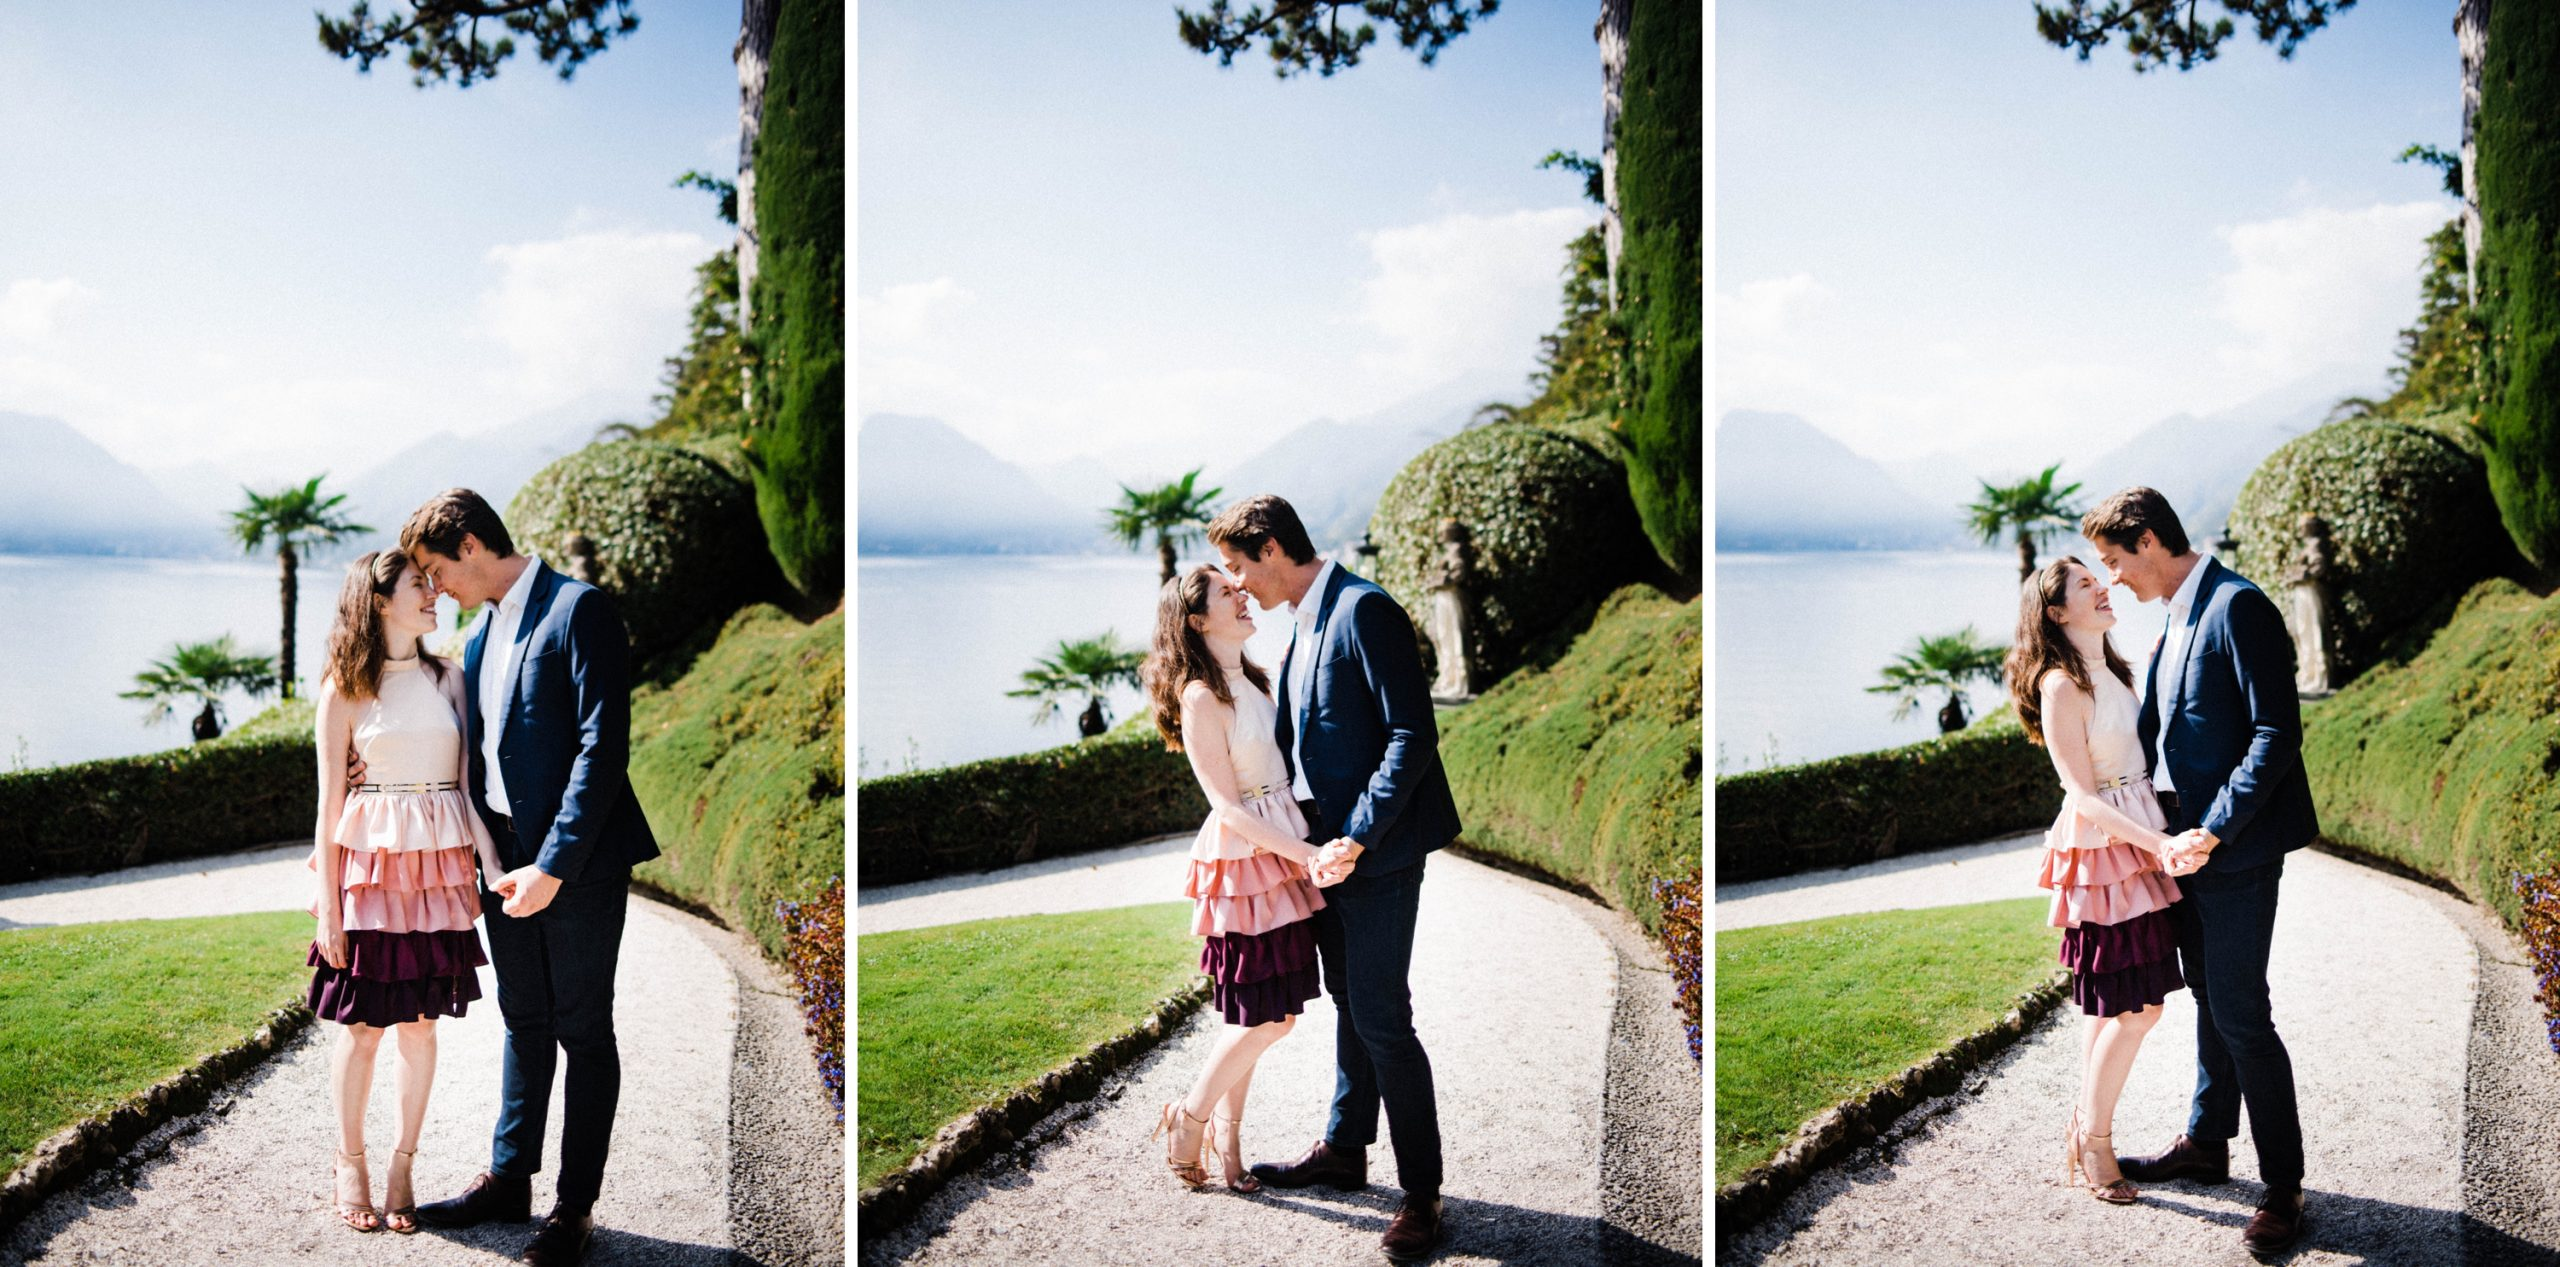 Three side-by-side photos of a couple sharing a romantic moment together at Villa Balbianello.